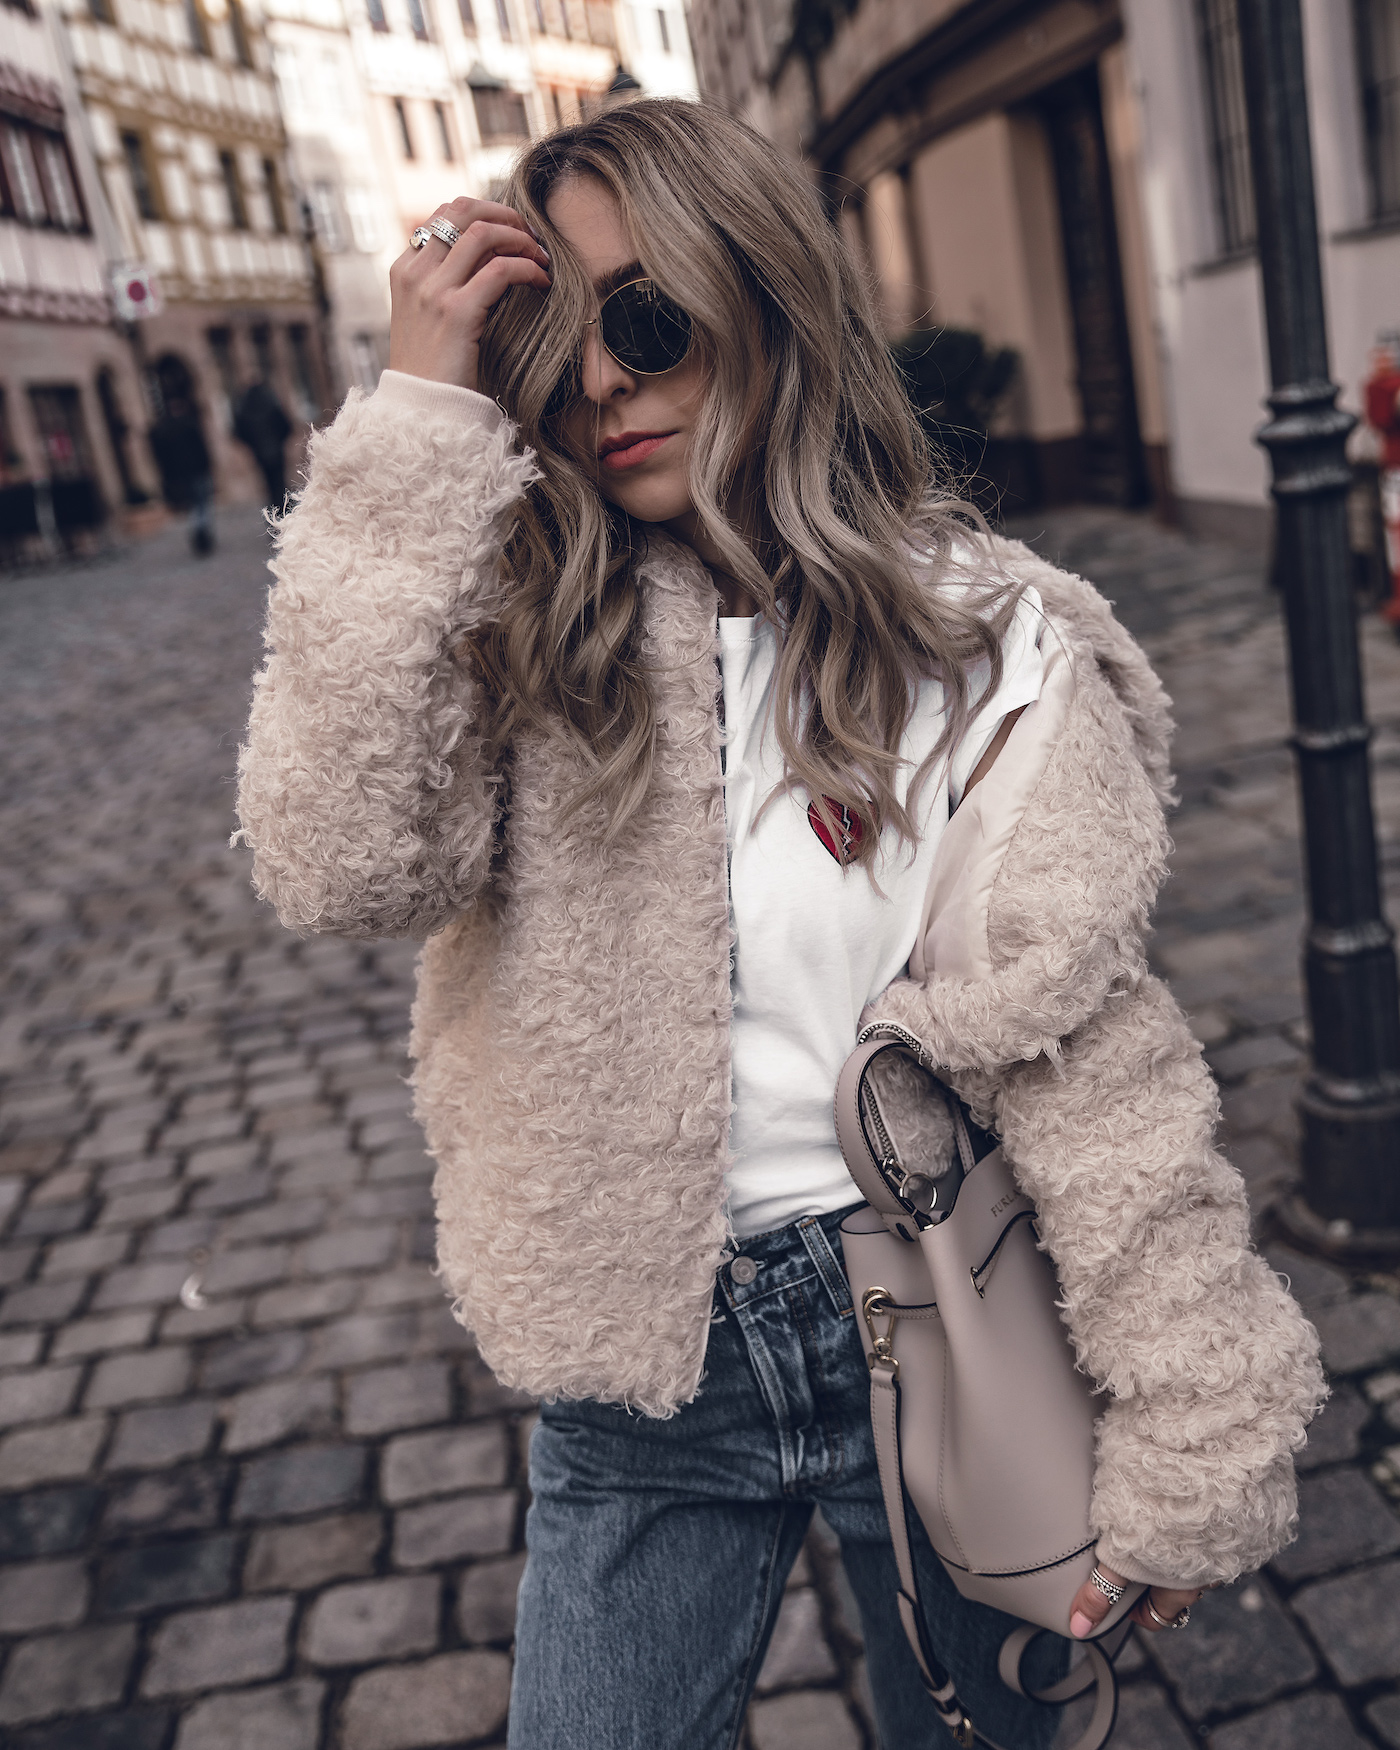 762922e8e93 3 Trendy Outfits to get you excited for Spring - Want Get Repeat